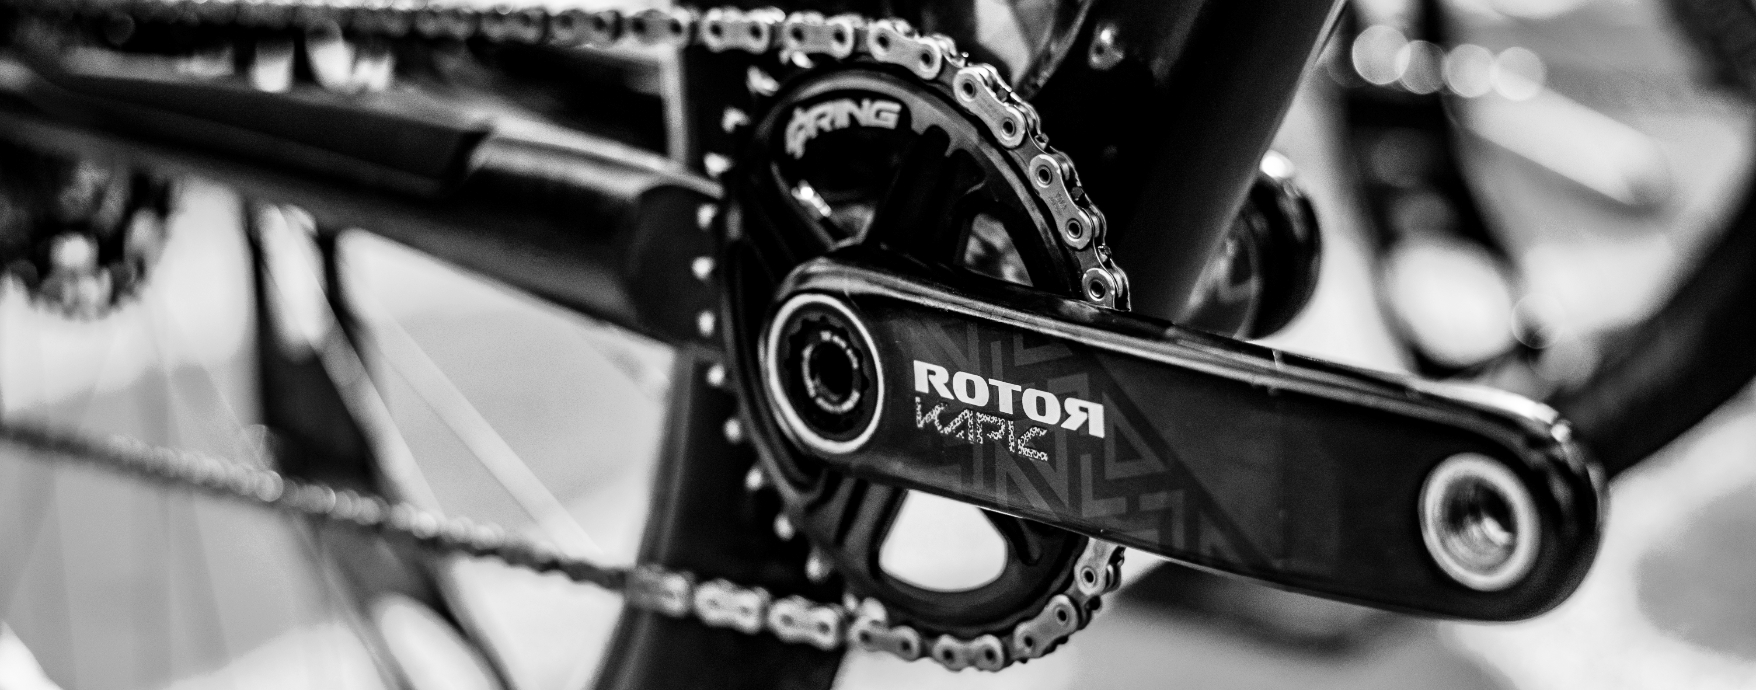 The advantages of Q-Rings in MTB